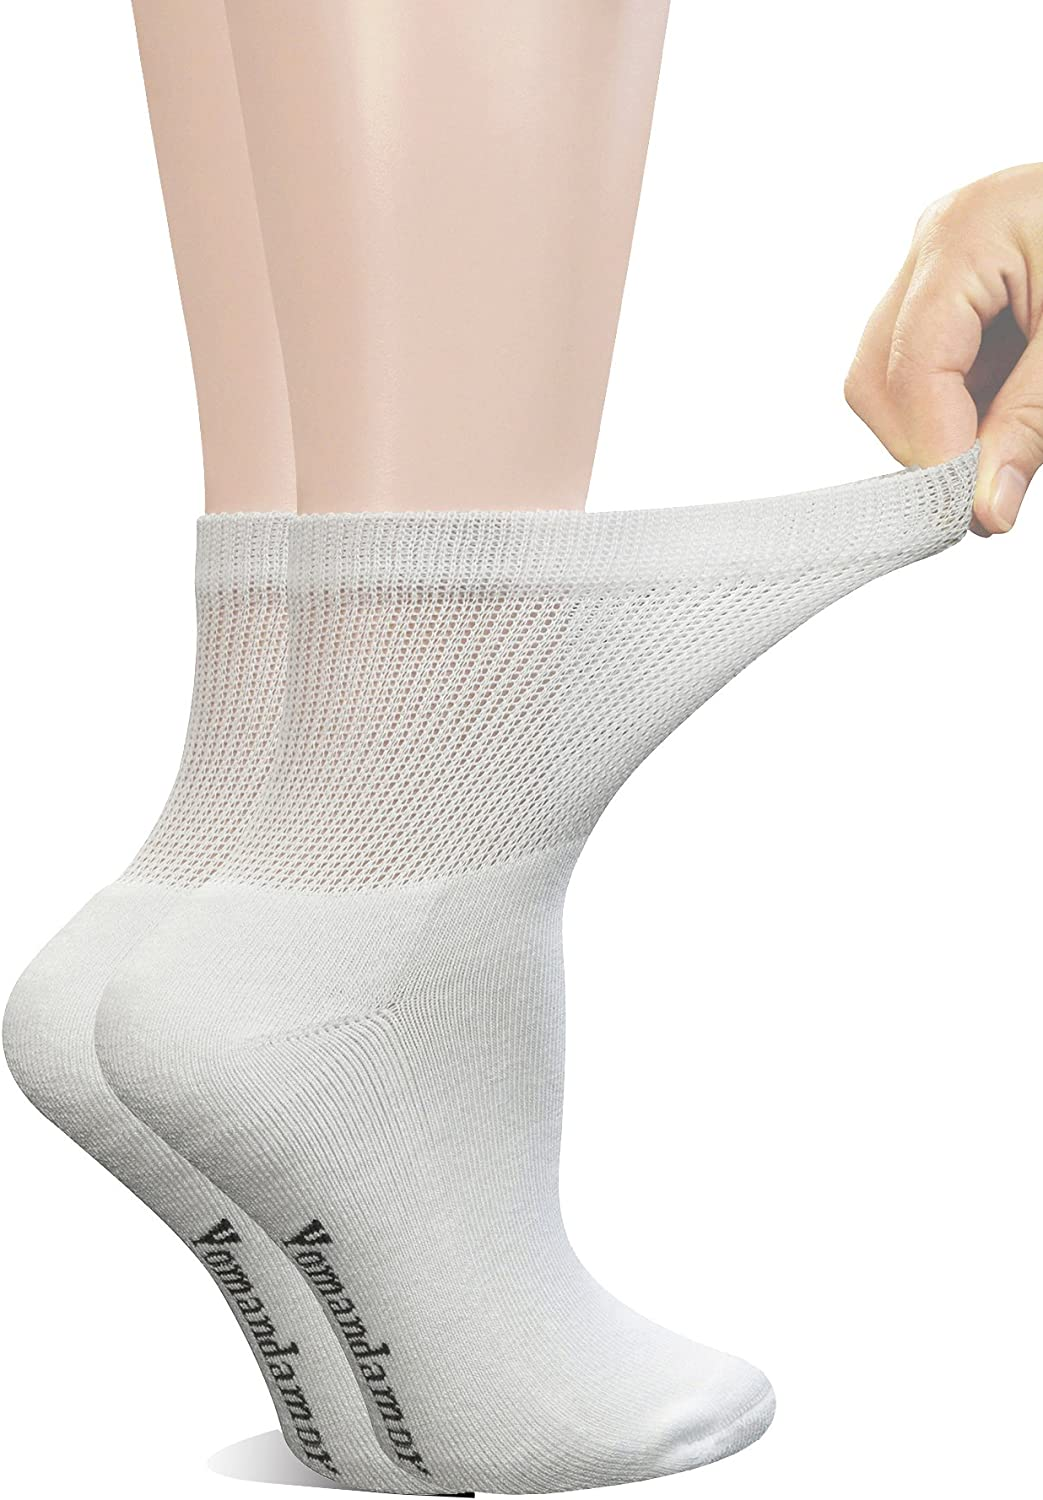 Yomandamor Women's 6 Pairs Bamboo Diabetic Ankle Socks with Non-Binding Top And Cushion Sole,L Size(Socks Size:9-11): Clothing